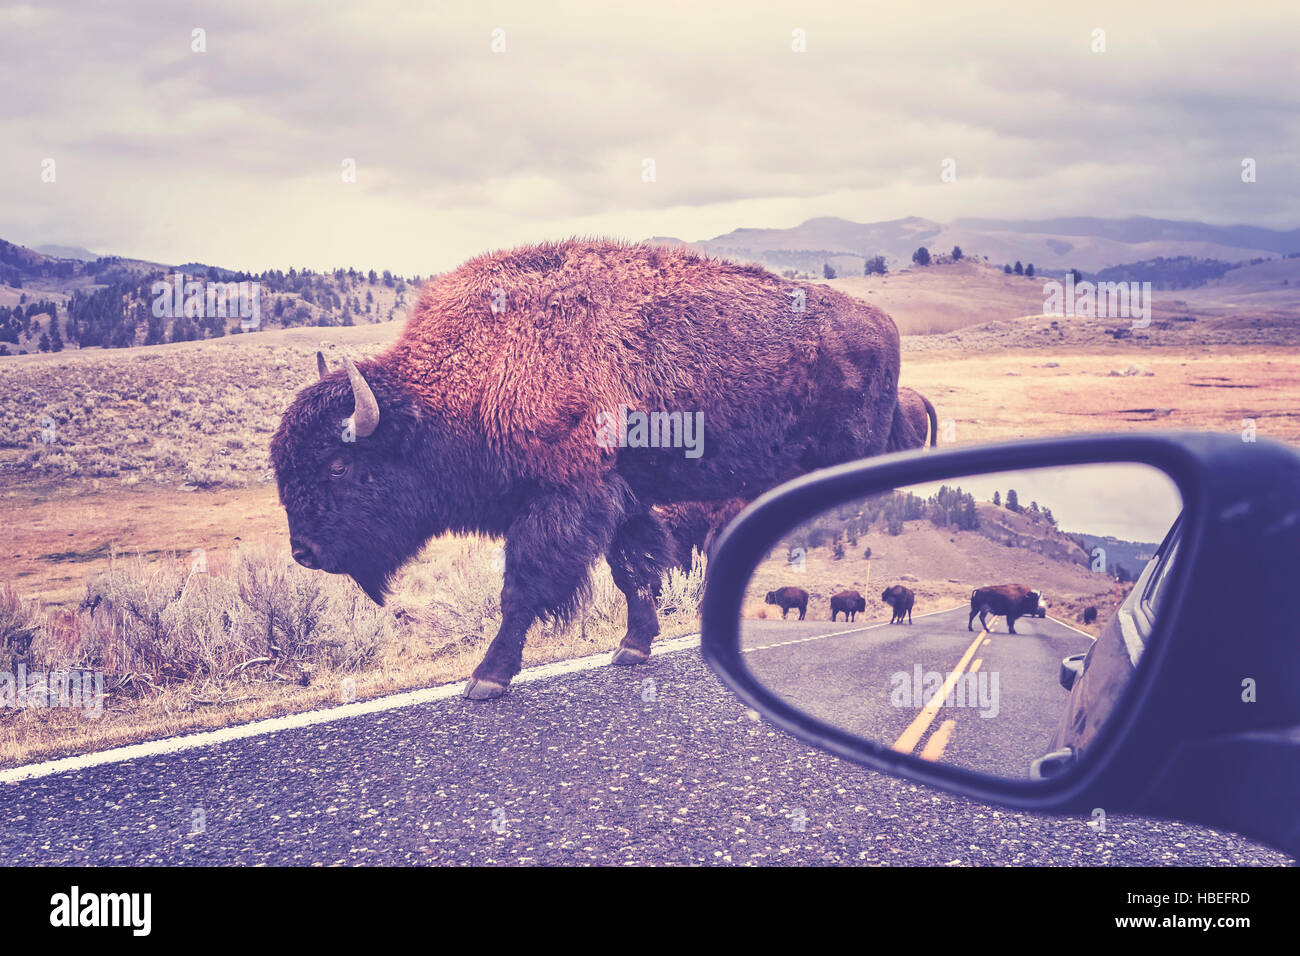 Tons rétro photo de bison d'Amérique (Bison bison) sur une route vu de voiture siège conducteur Photo Stock